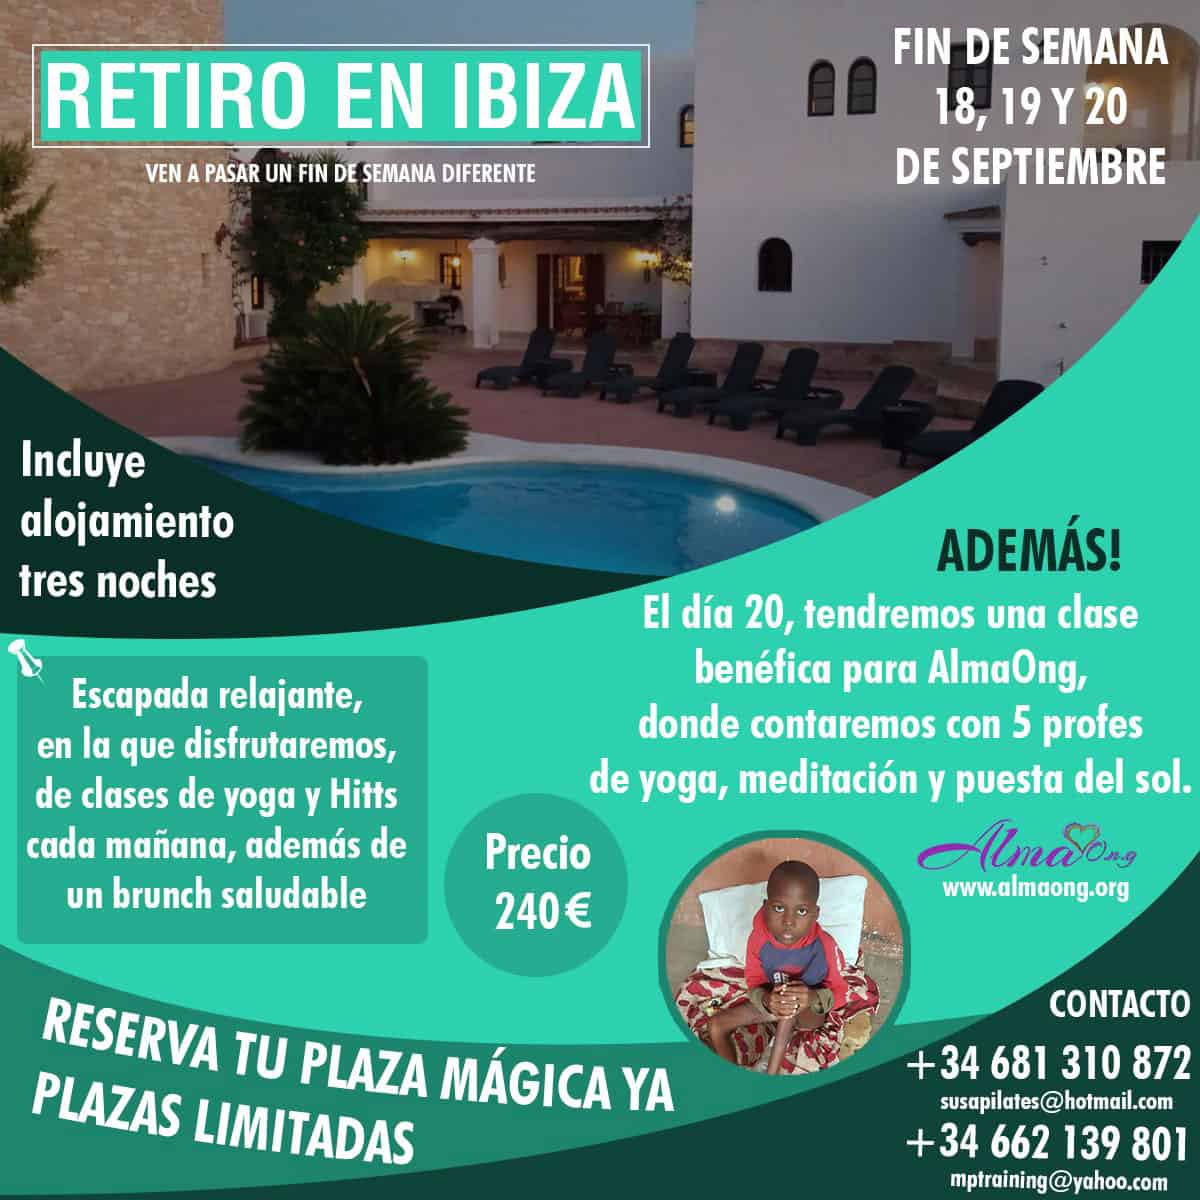 retiro-en-ibiza-2020-welcometoibiza